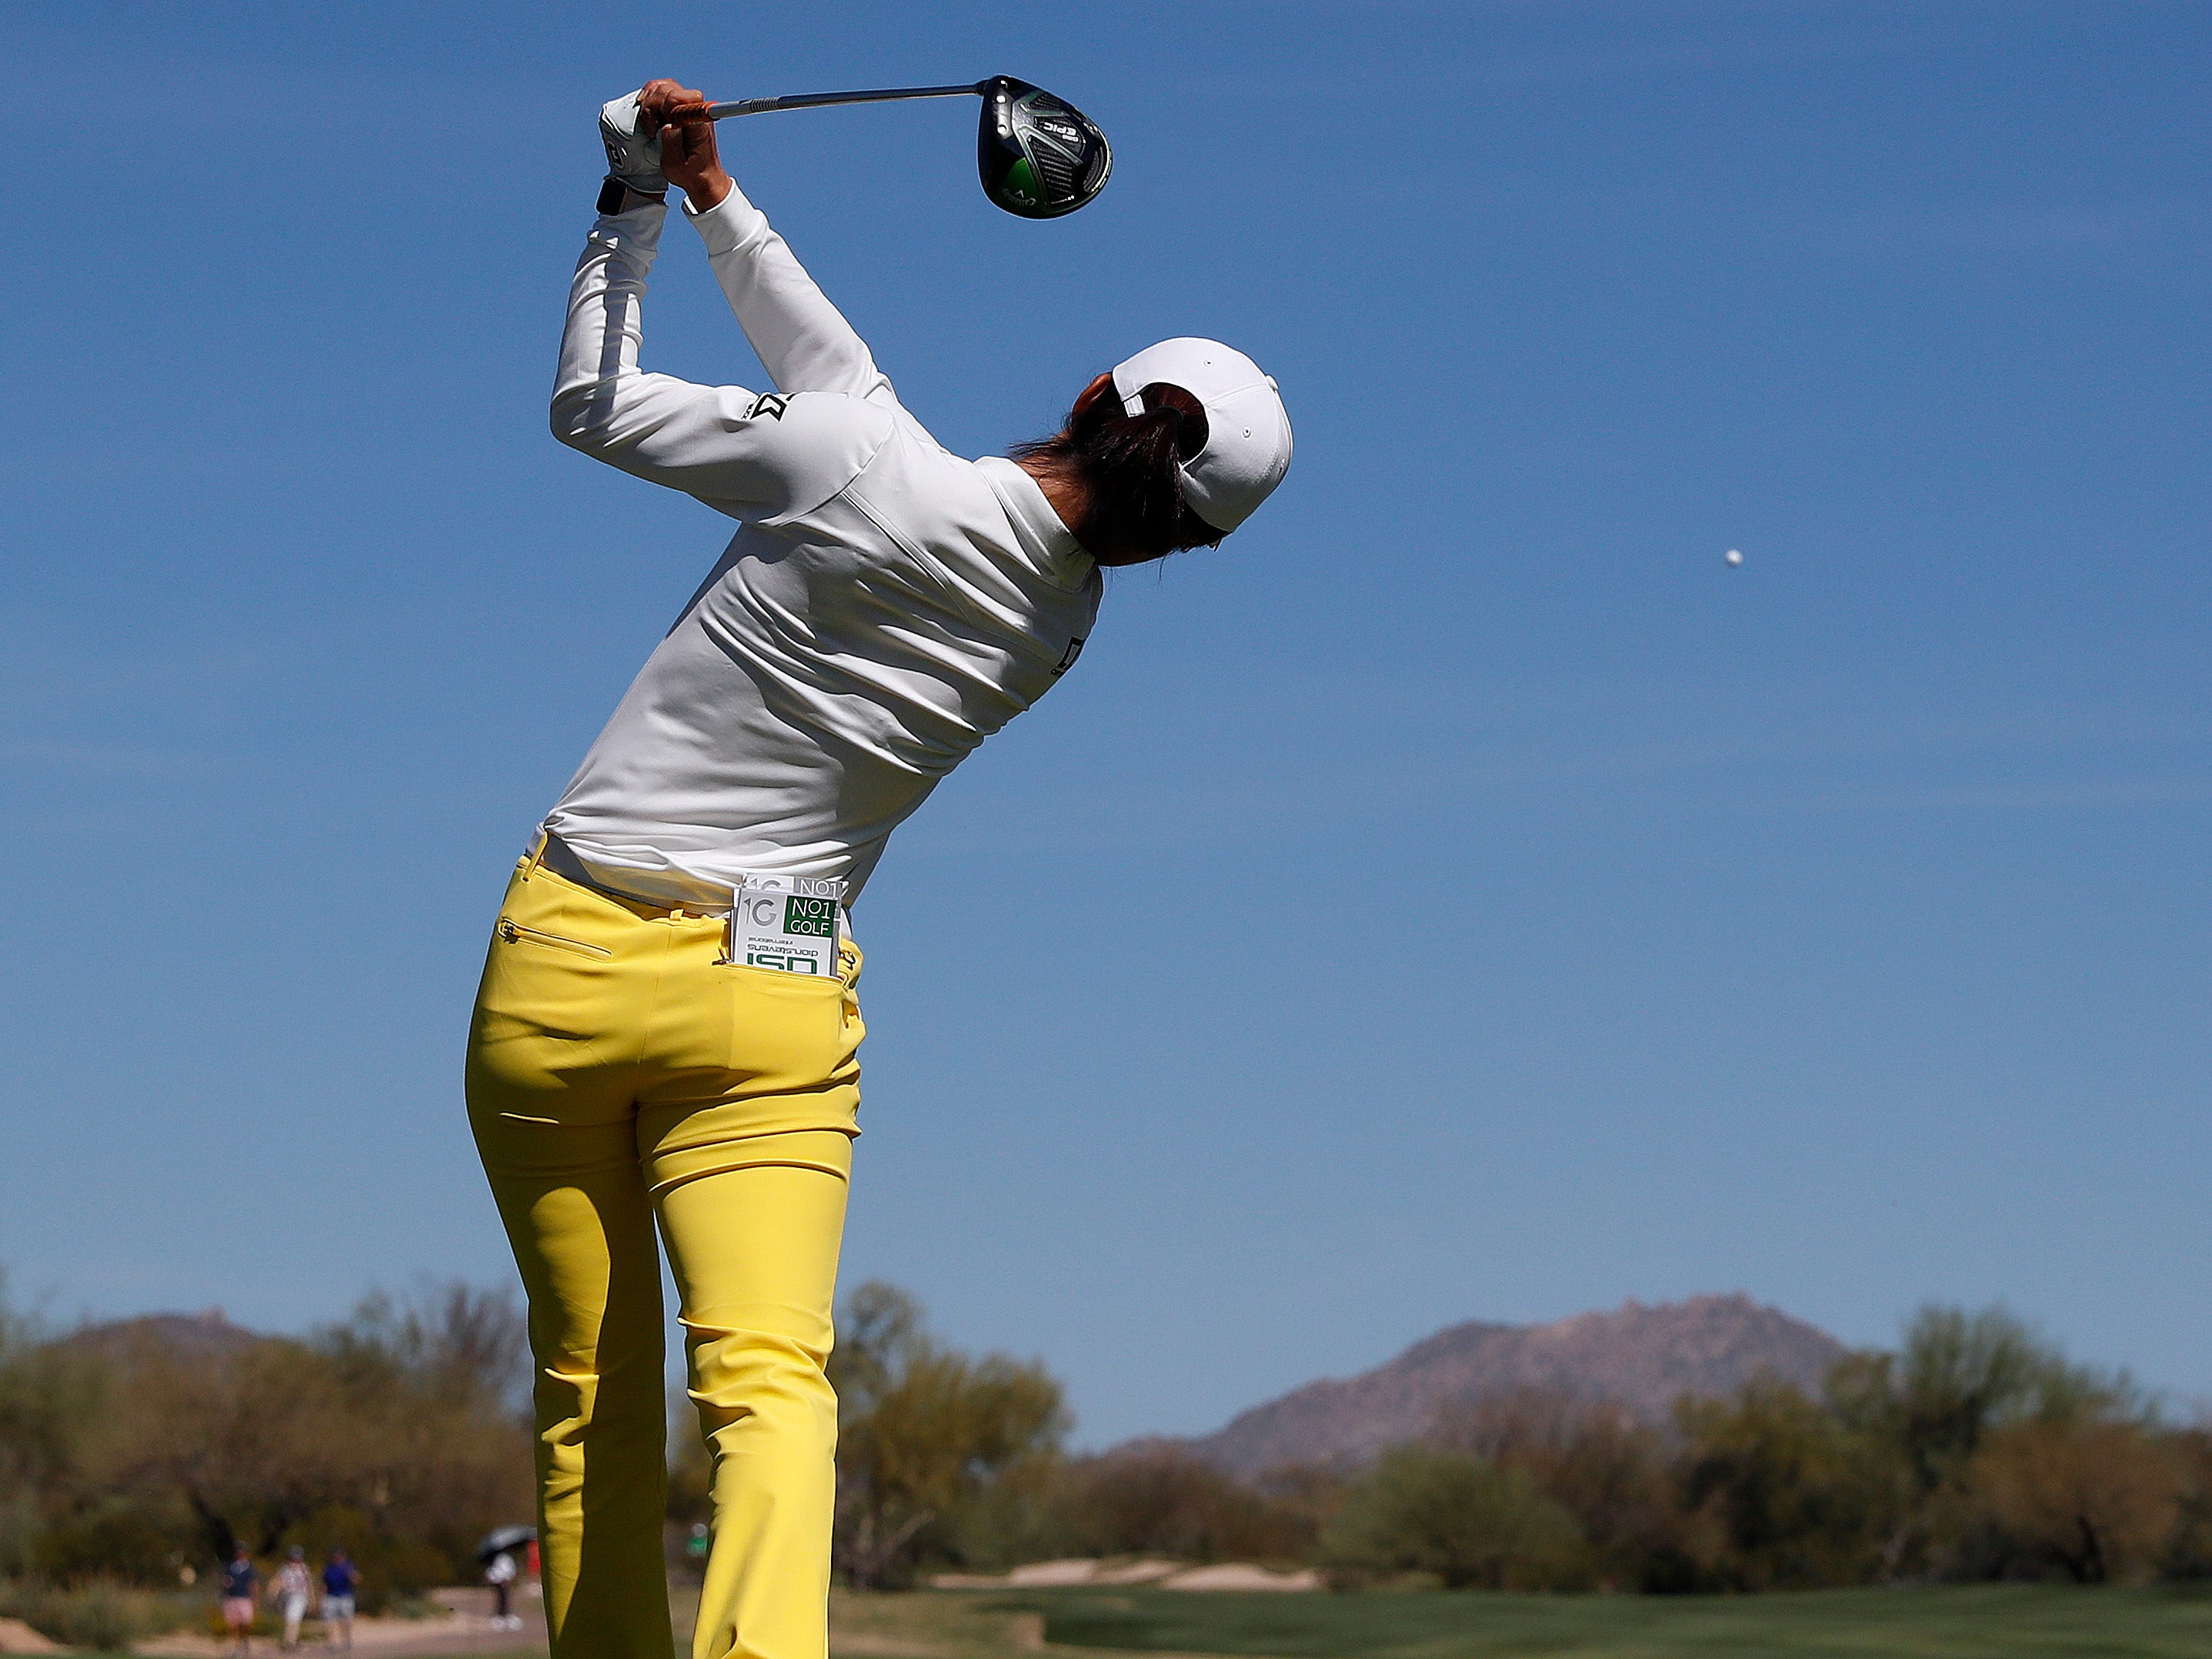 Yu Liu hits from the second tee during the third round of the Founders Cup LPGA golf tournament, Saturday, March 23, 2019, in Phoenix.